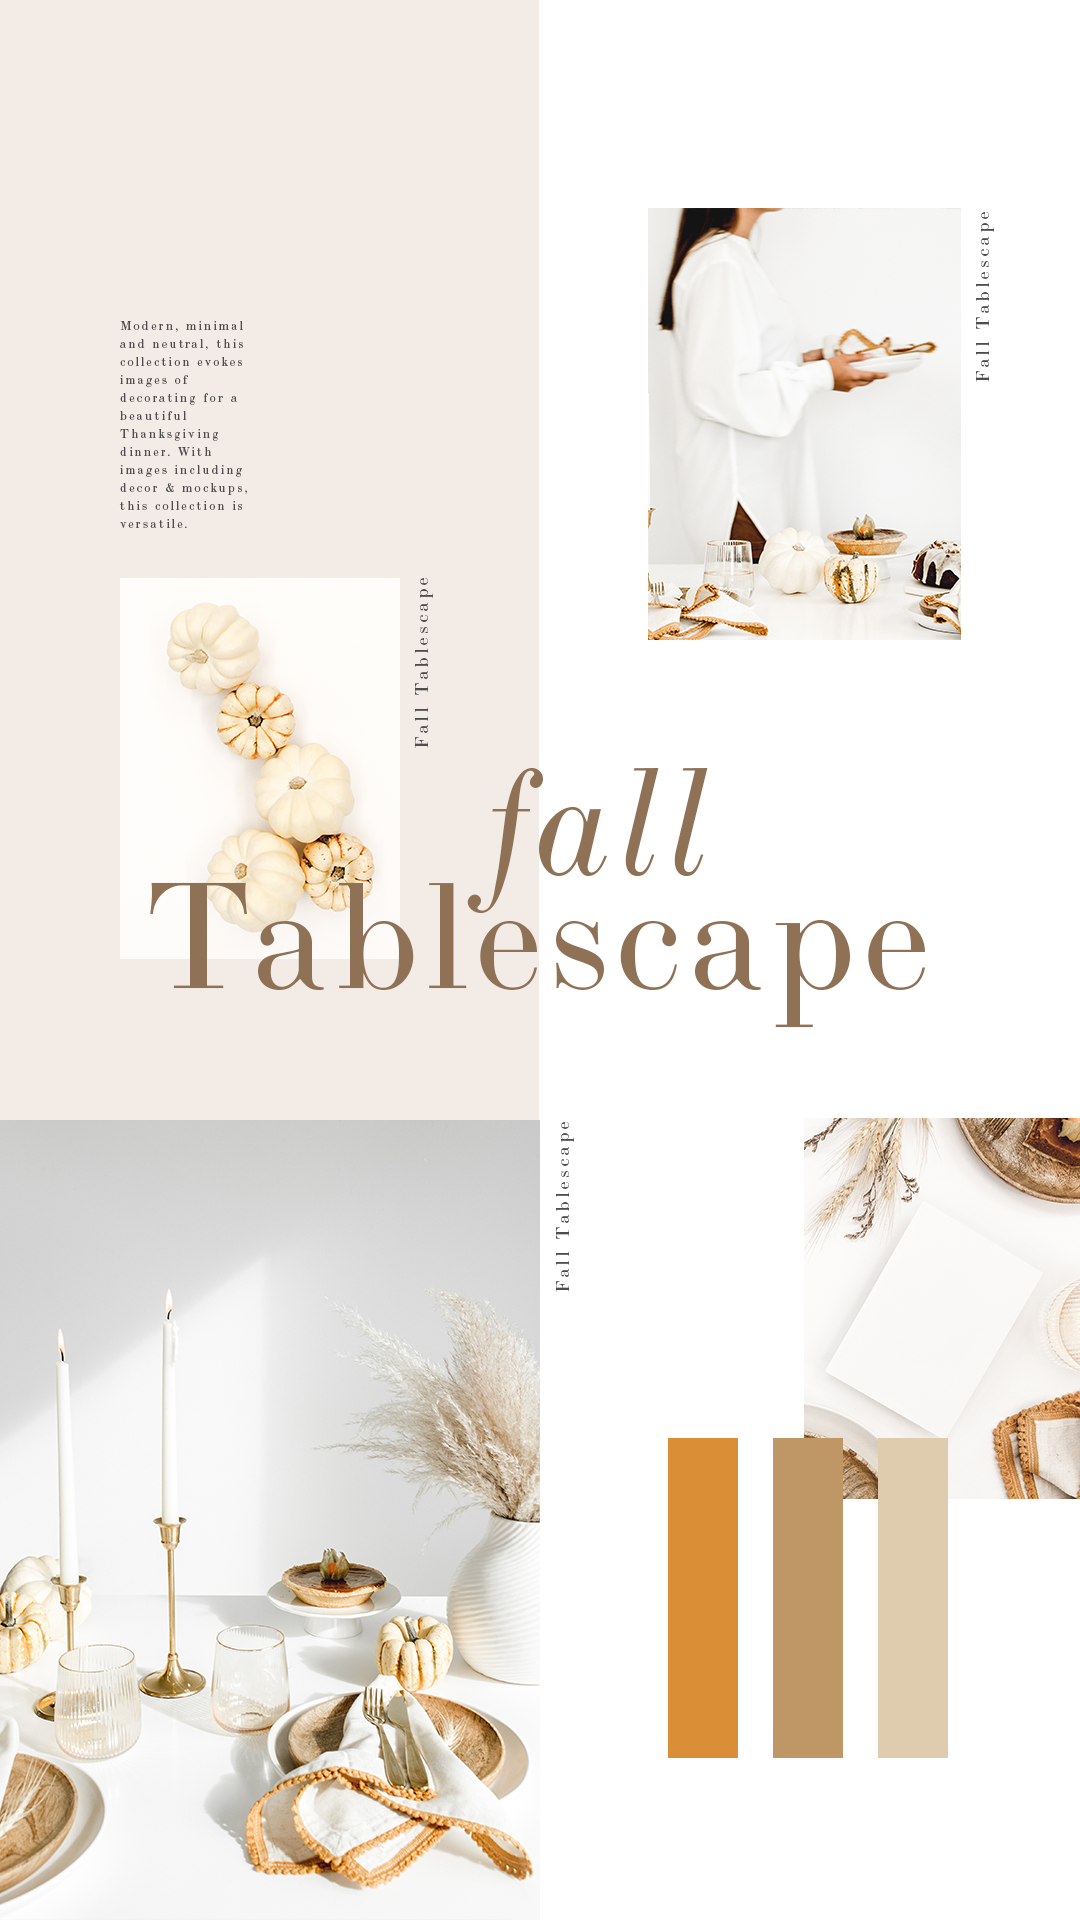 Neutral fall decor stock photos. Entertaining stock photos. Autumn stock photos. Fall tablescape stock photos. Available exclusively for Haute Stock Members. Click to view collection.